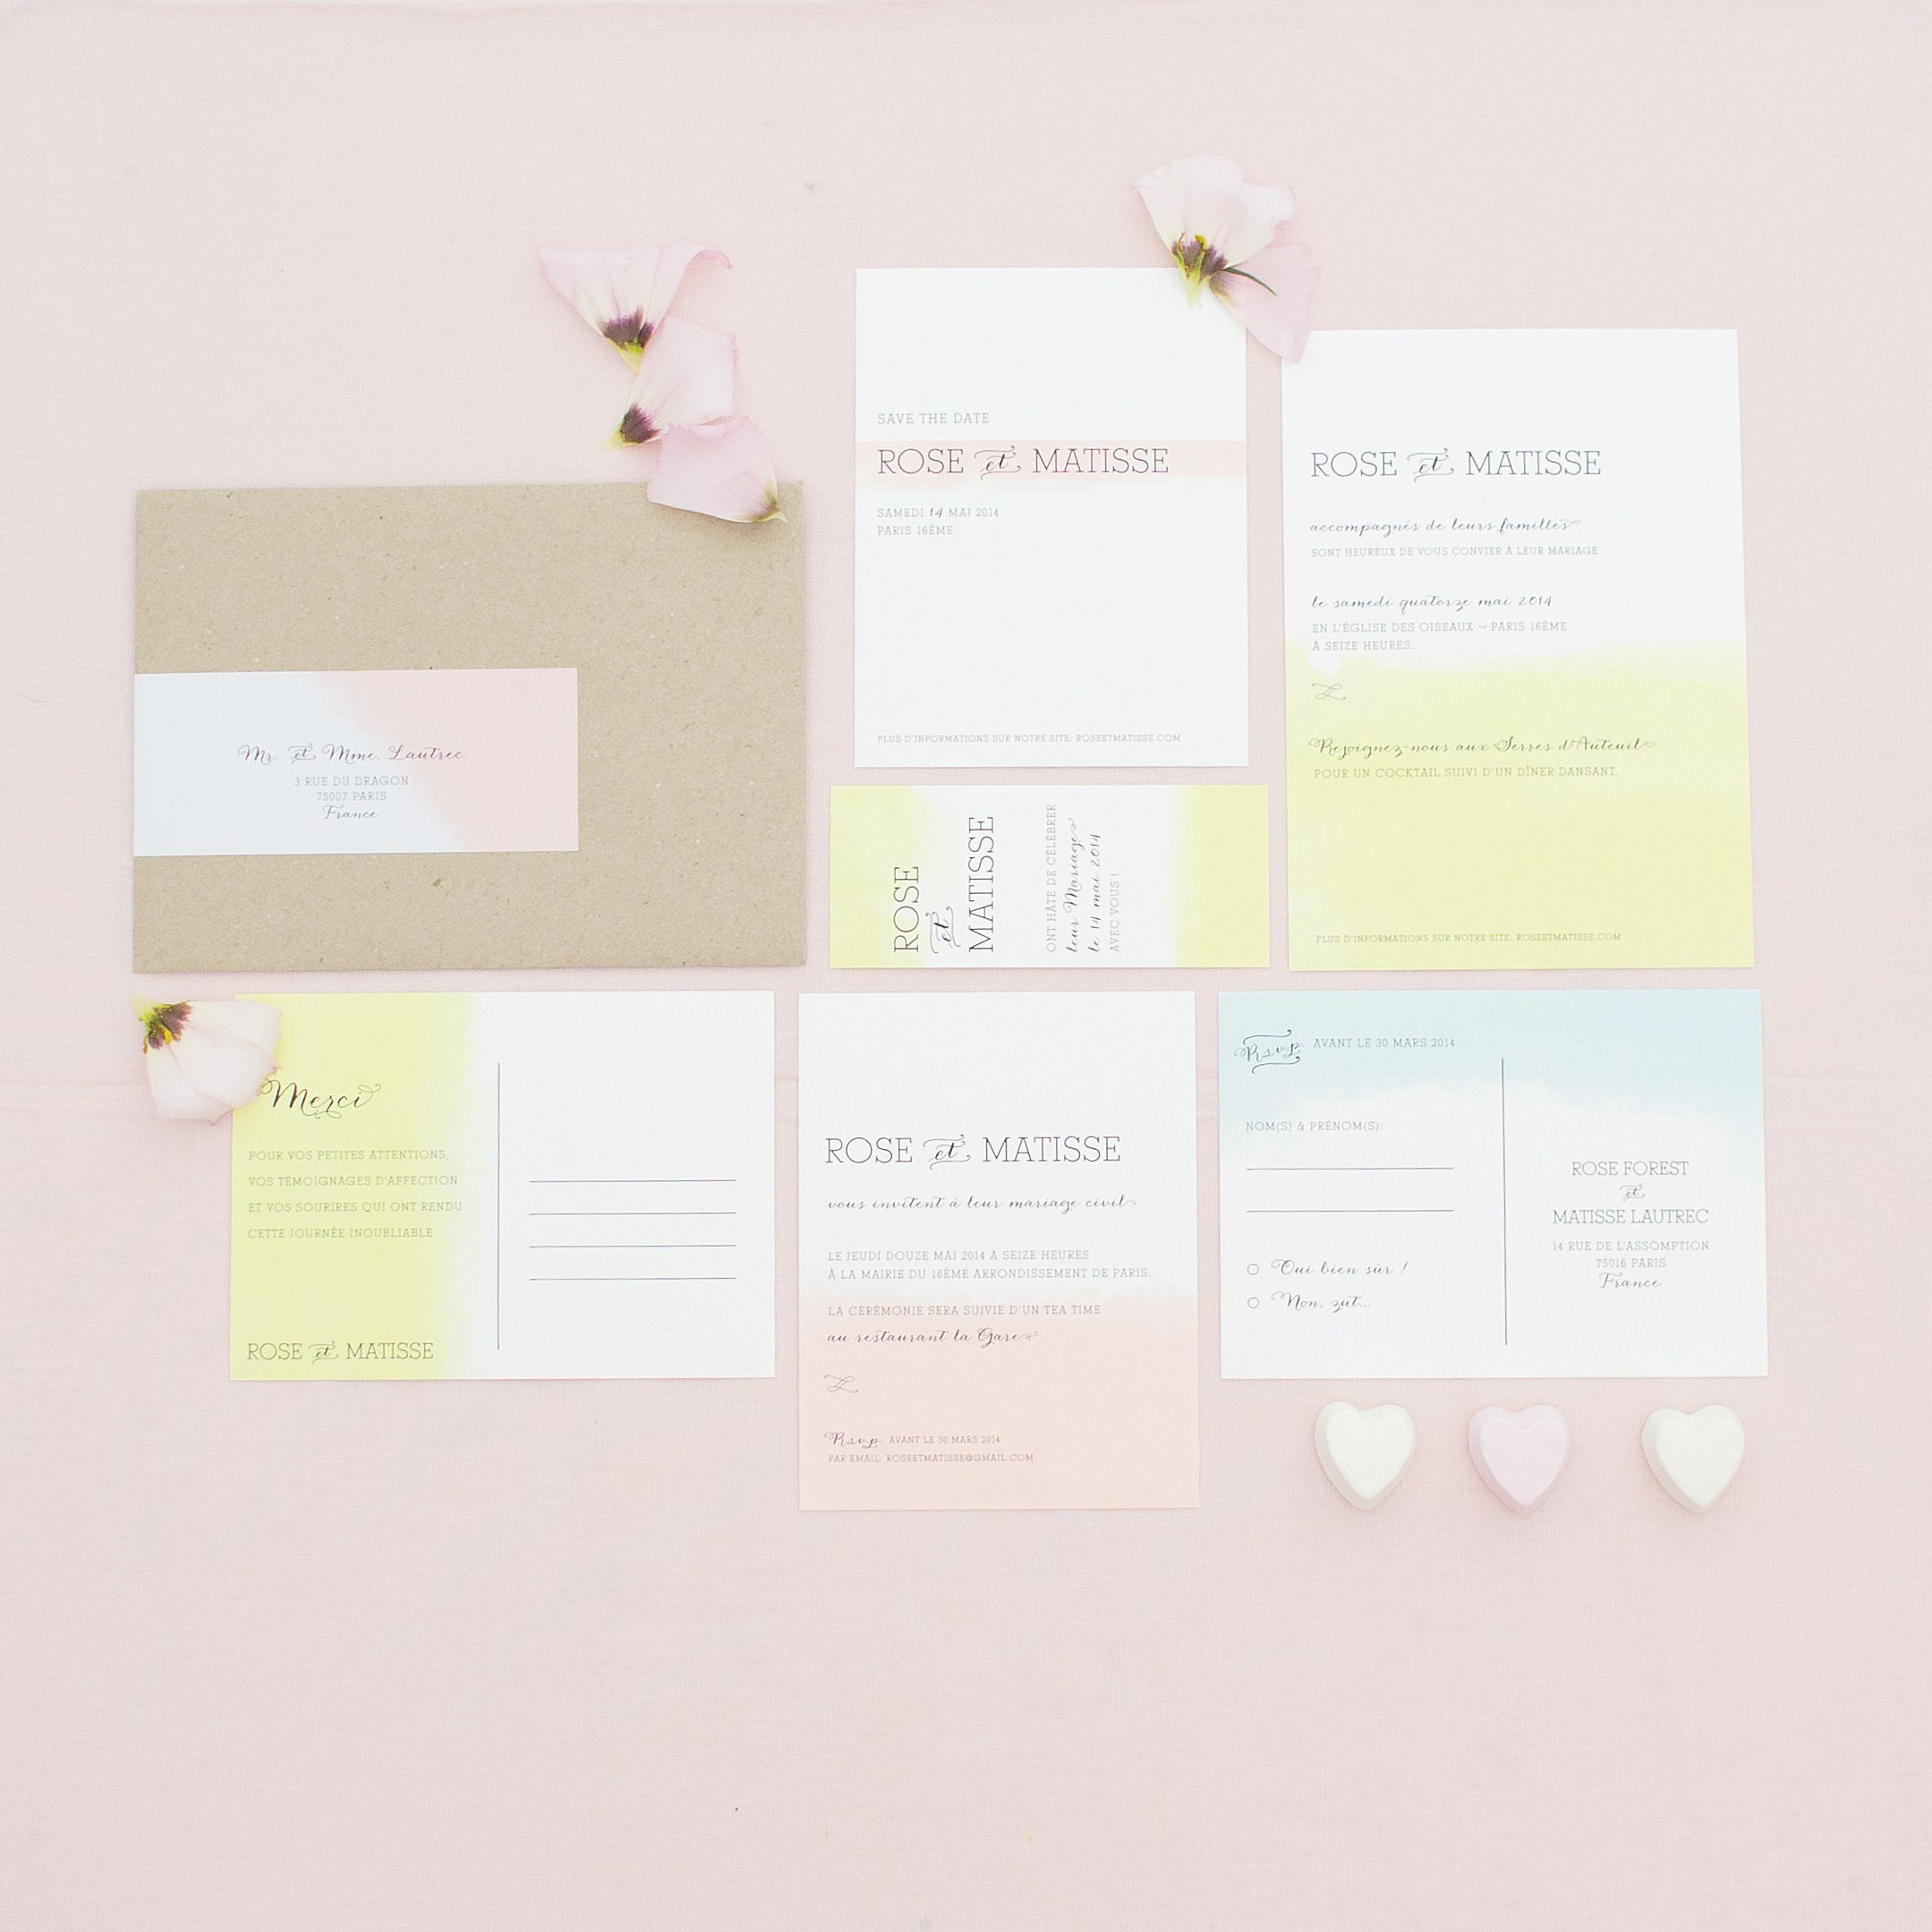 paper style wedding invitations%0A Enamoured  Wedding StationaryWedding InvitationsSpring